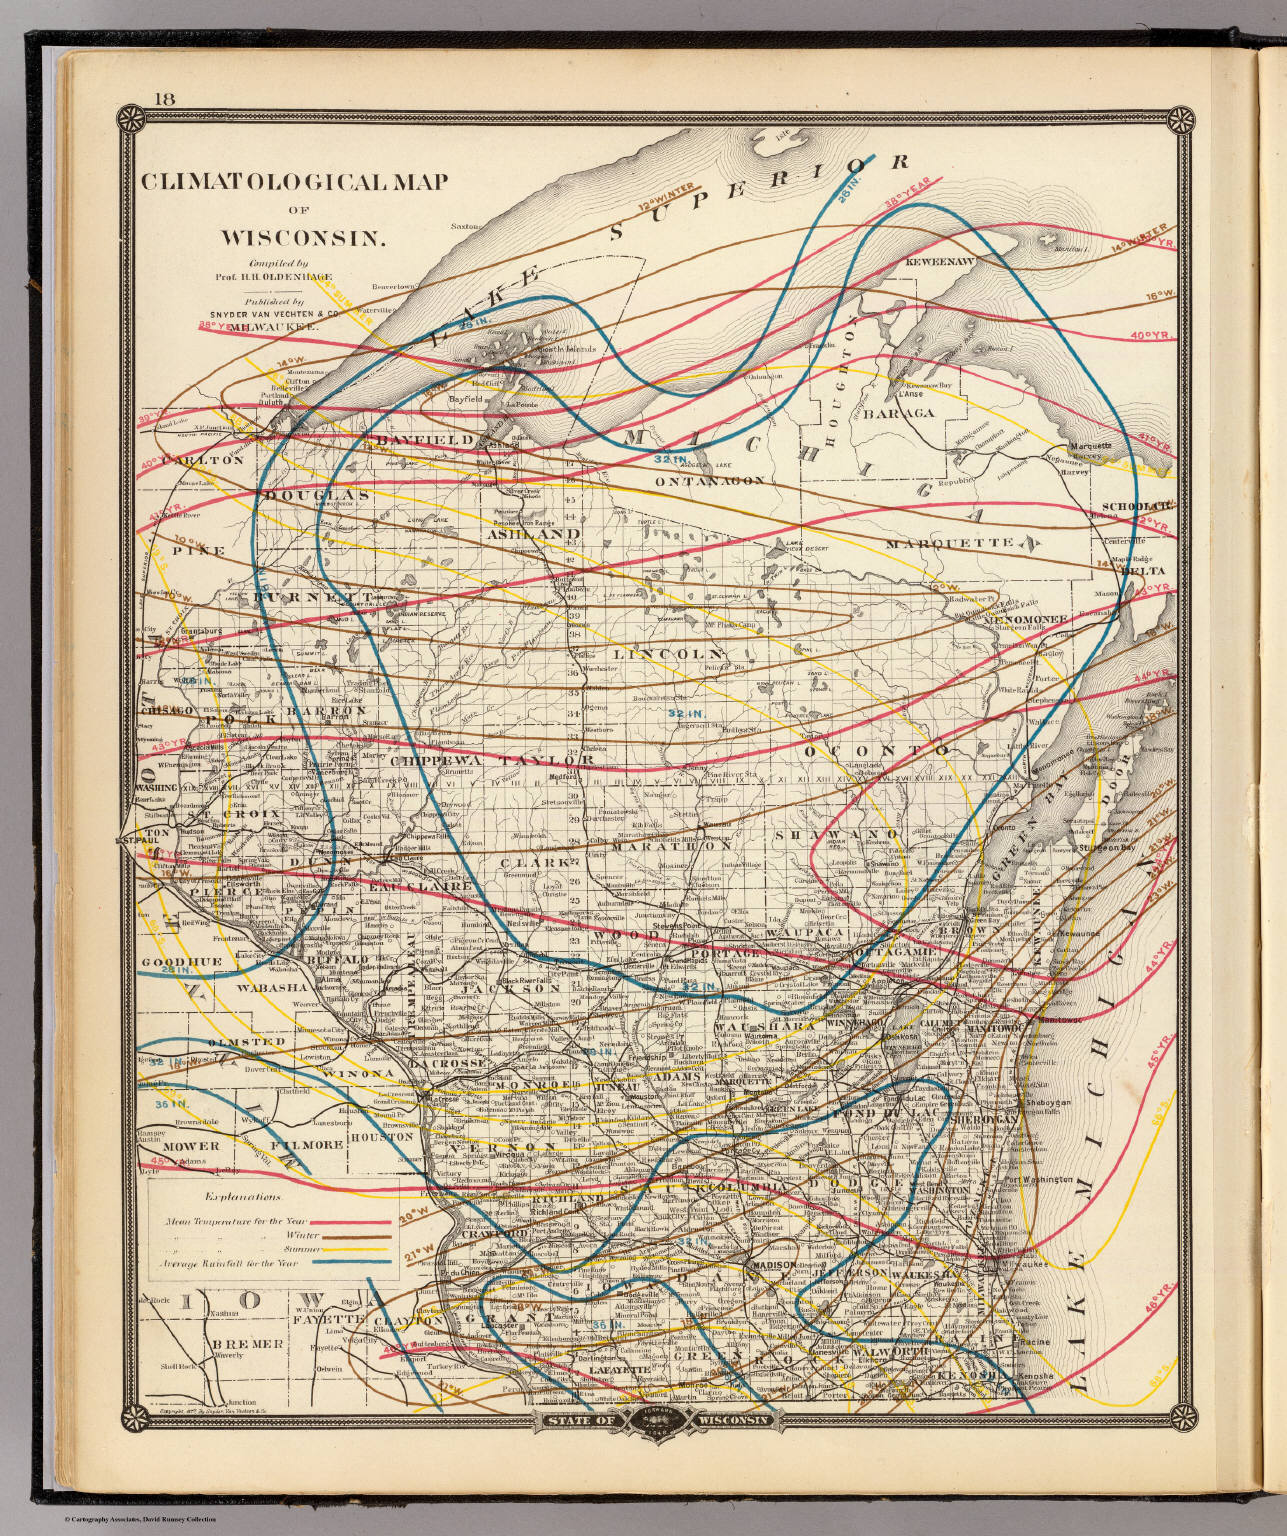 Climatological Map Of Wisconsin David Rumsey Historical Map - A map of wisconsin